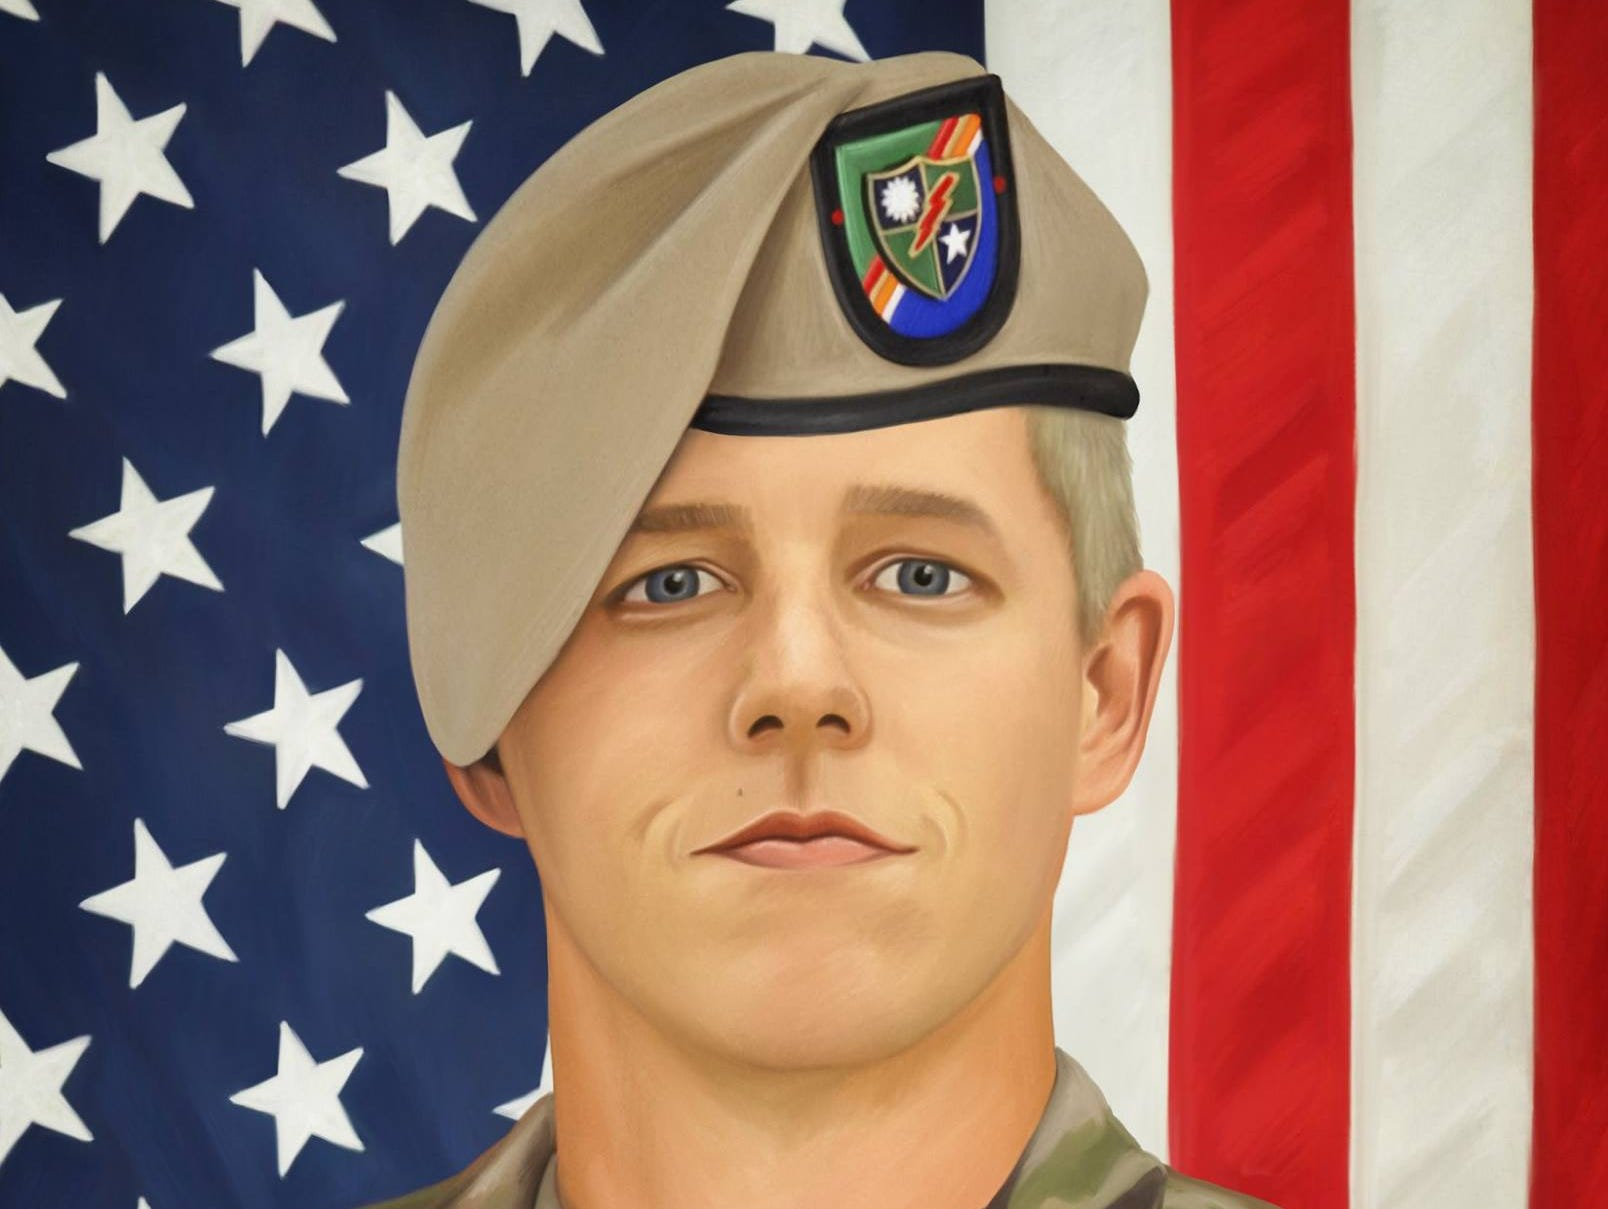 On July 12th, U.S. Army Ranger (1-75) Sergeant First Class Christopher Celiz was killed during a firefight with taliban forces in the Paktia Province of Afghanistan.